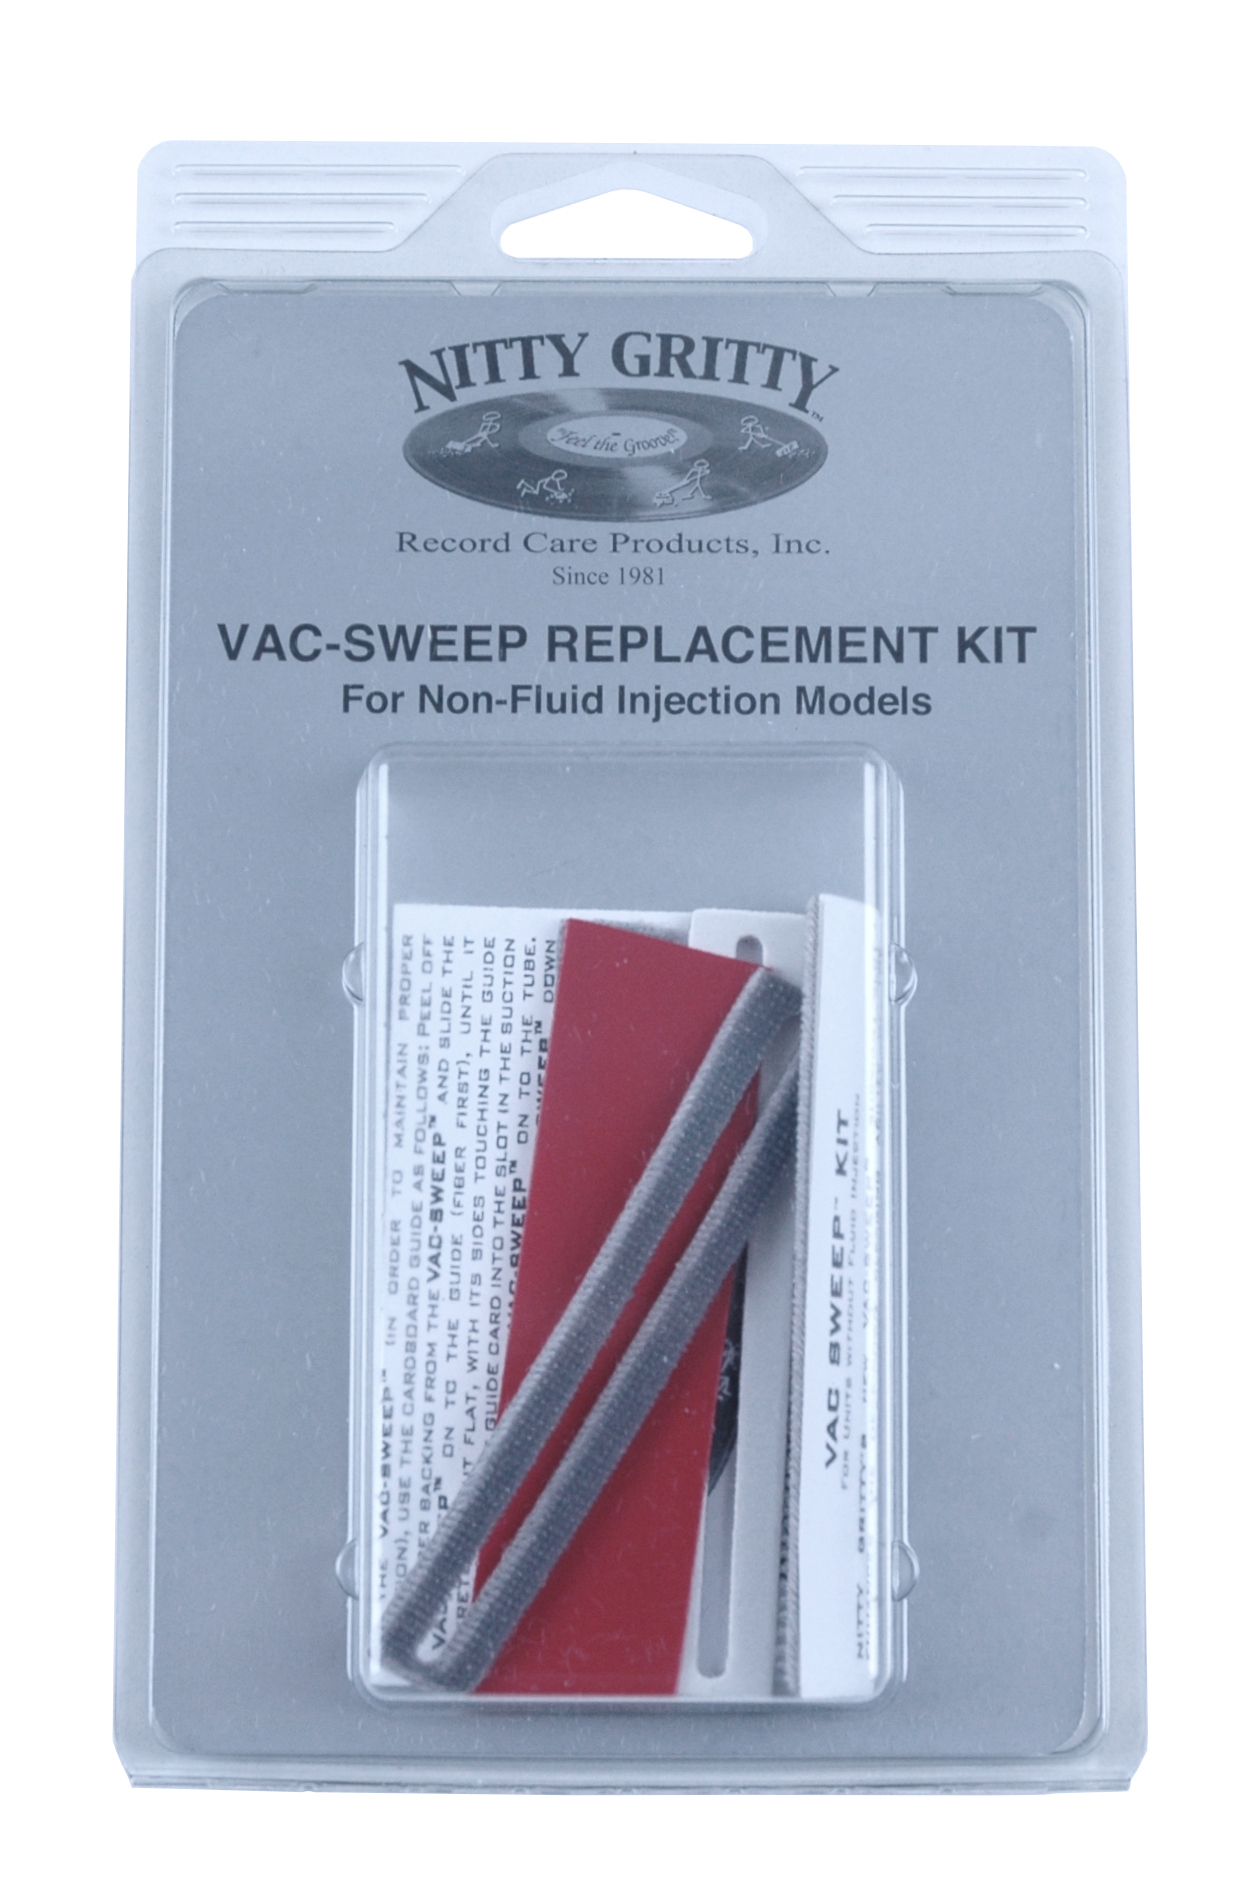 Nitty Gritty Vac-Sweep Replacement Kit (Non-Fluid Models Only) (4 Pack)